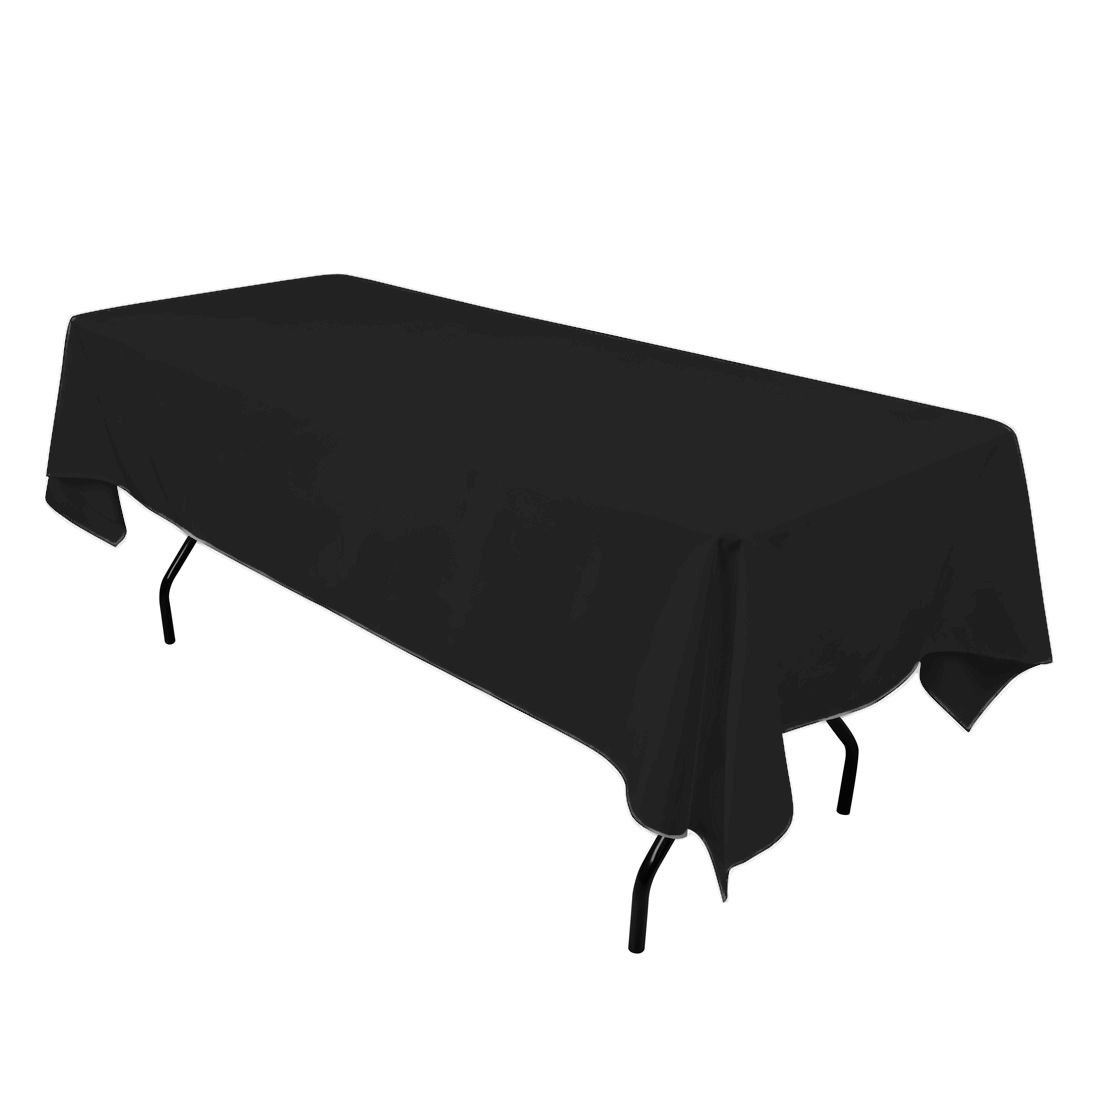 """Gee Di Moda Rectangle Tablecloth - 60 x 102"""" Inch - Black Rectangular Table Cloth for 6 Foot Table in Washable Polyester - Great for Buffet Table, Parties, Holiday Dinner, Wedding & More"""